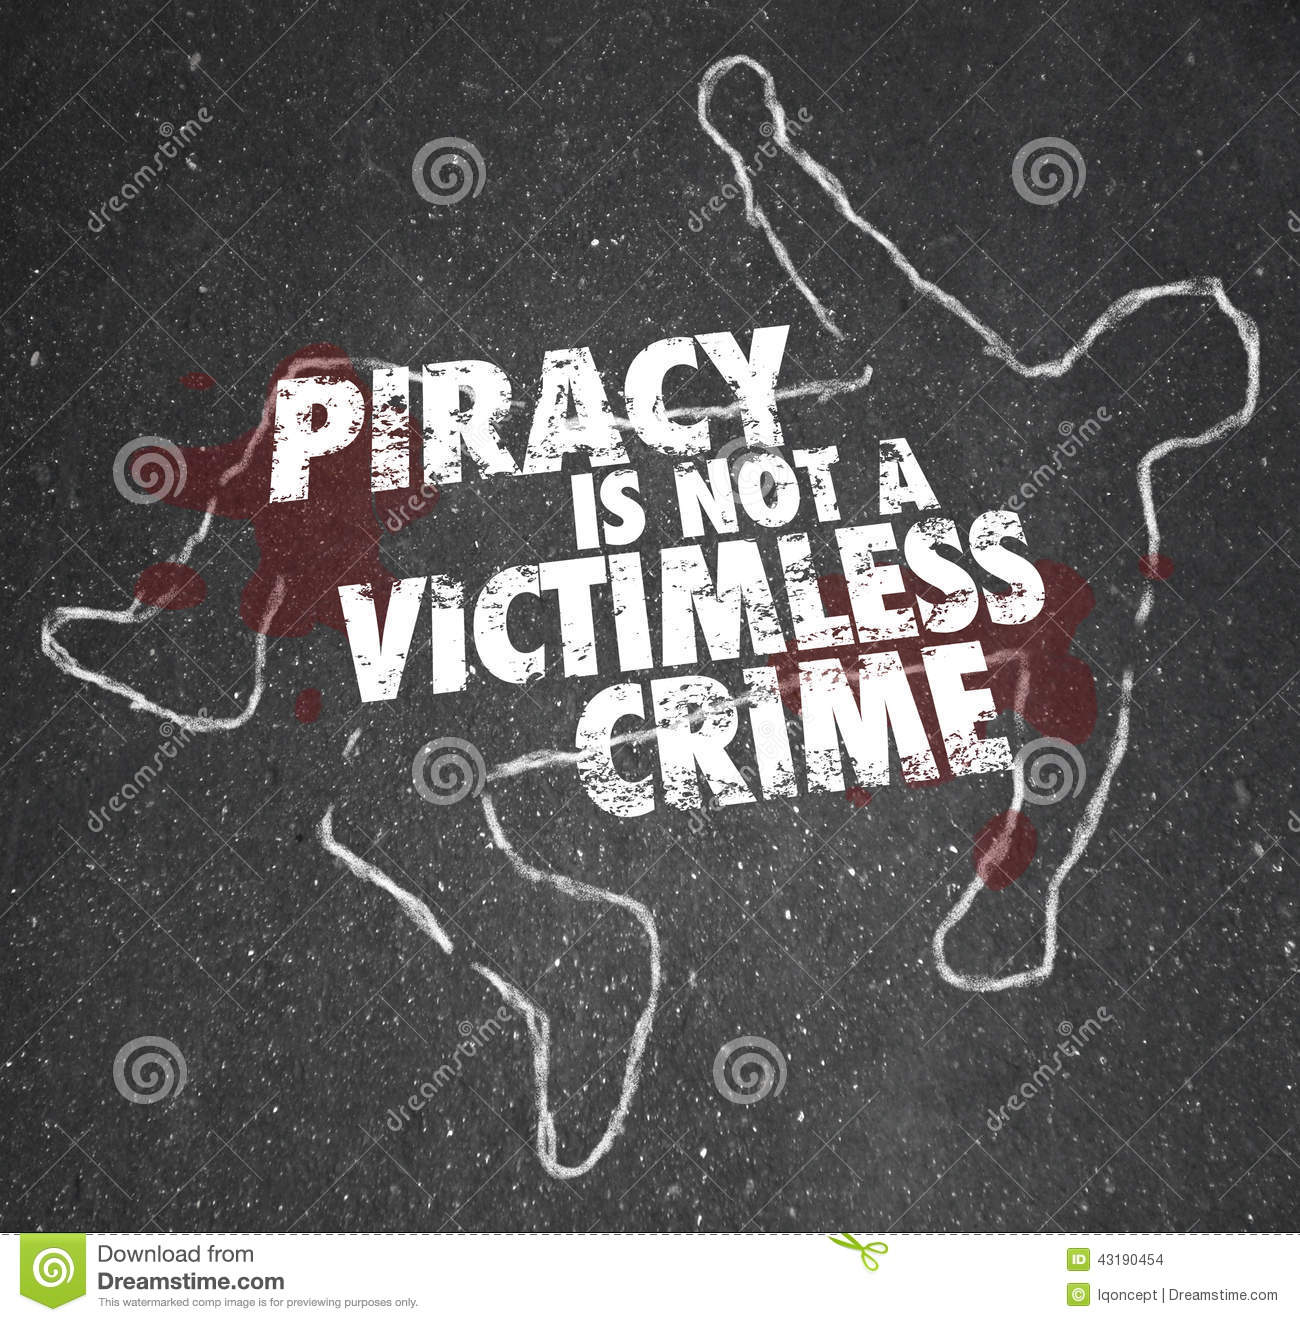 victimless crime Smoking cannabis is a victimless crime that should be legal because consenting  adults should have the freedom to make their own life choices.